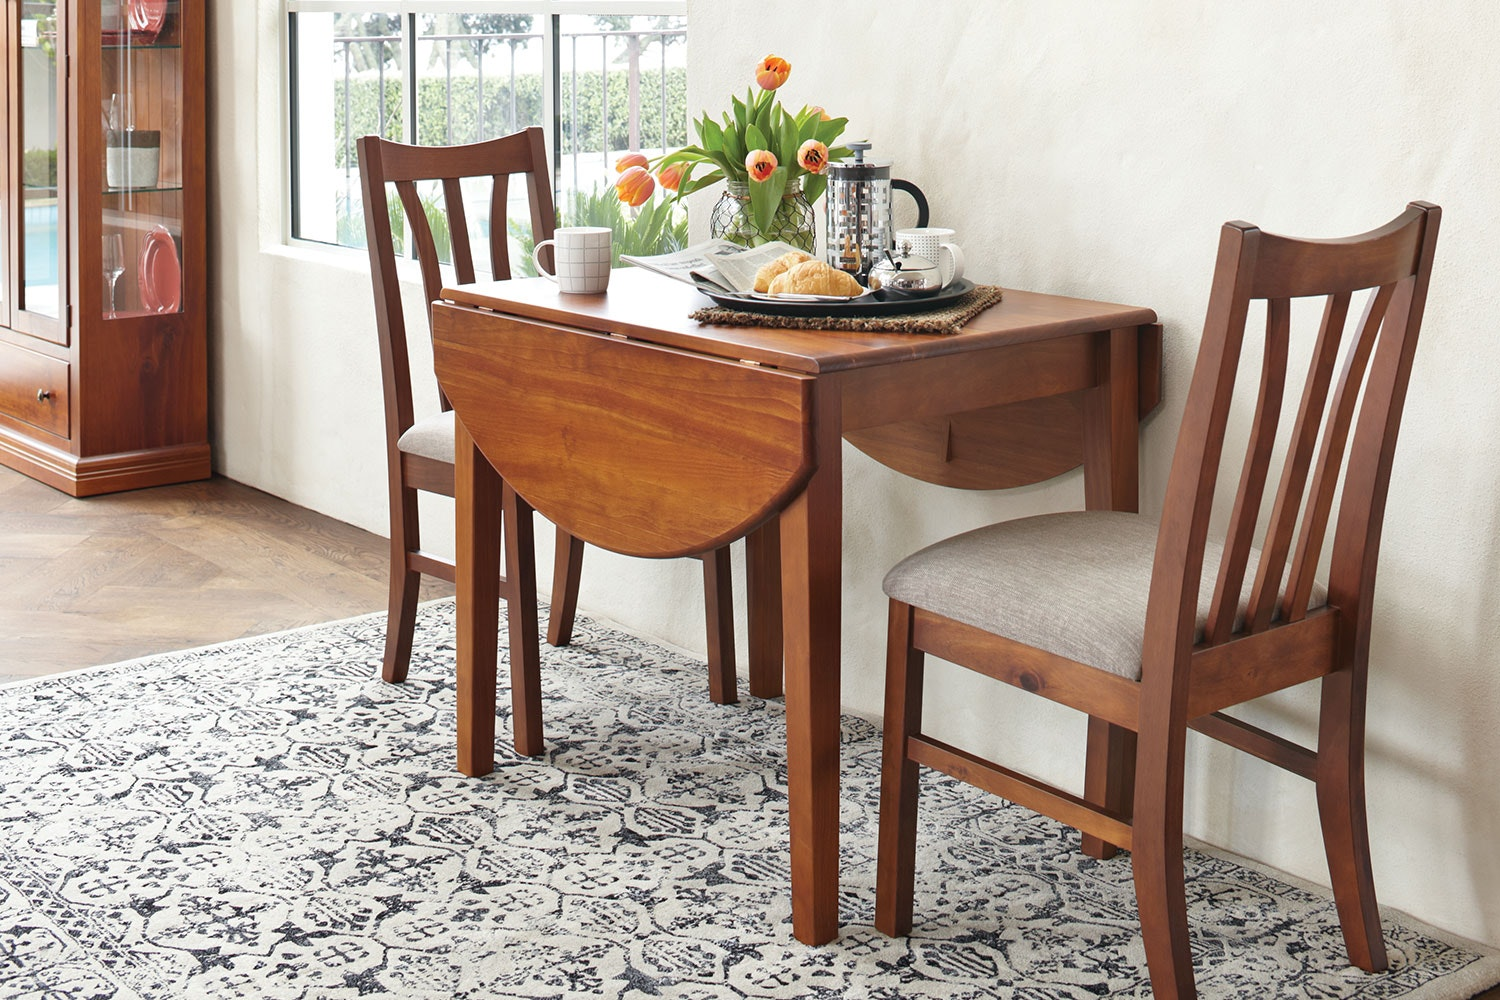 Waihi 3 Piece Drop Leaf Dining Suite by Coastwood Furniture